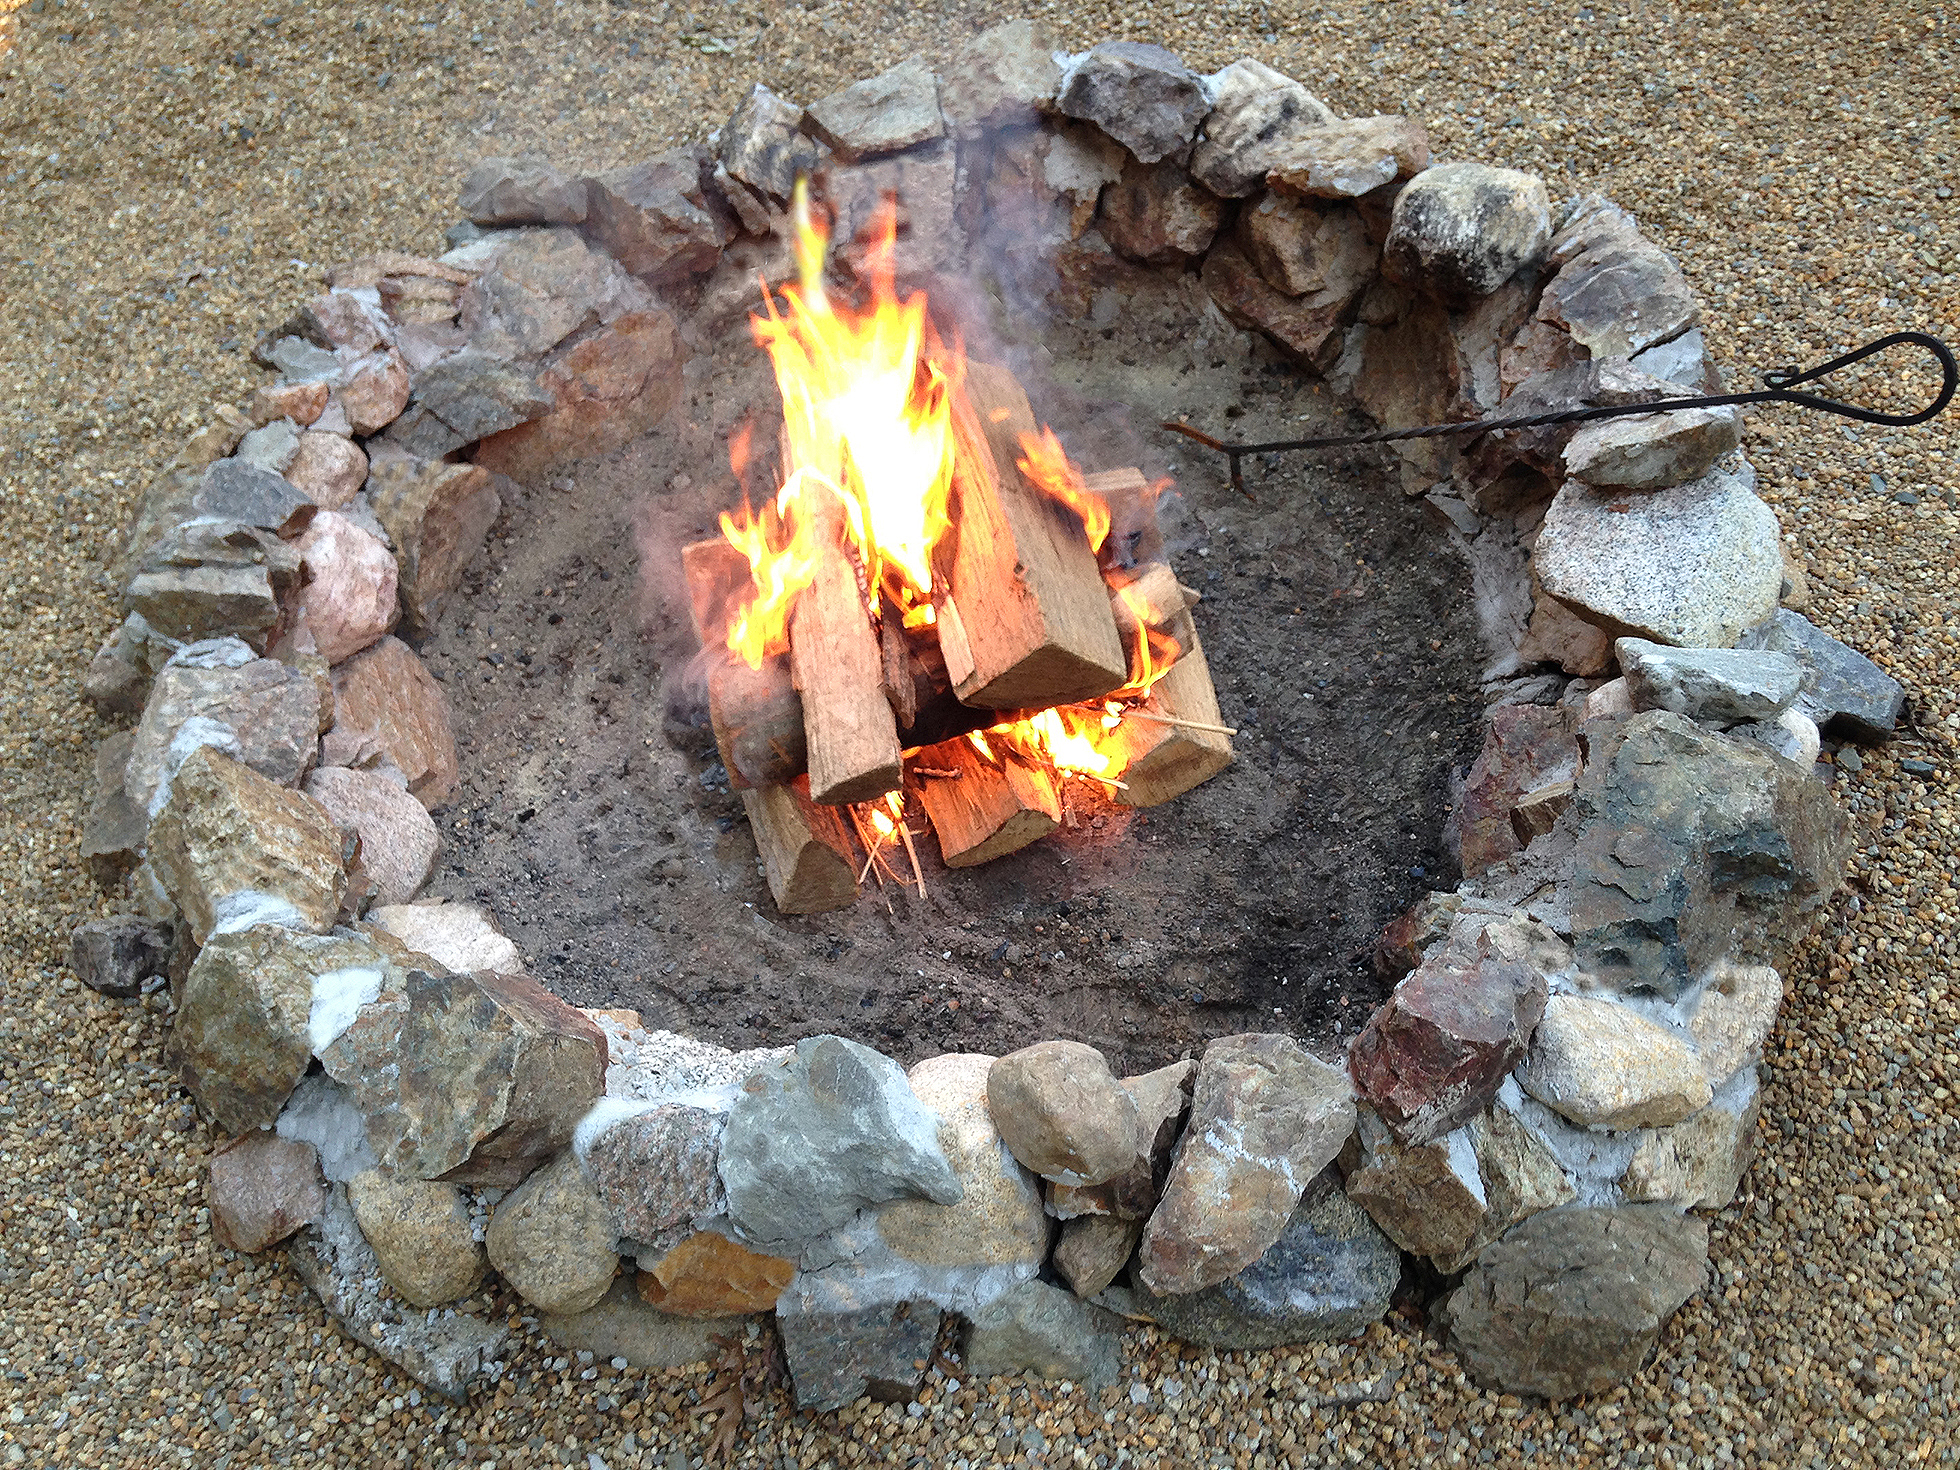 A rock fire pit with flame